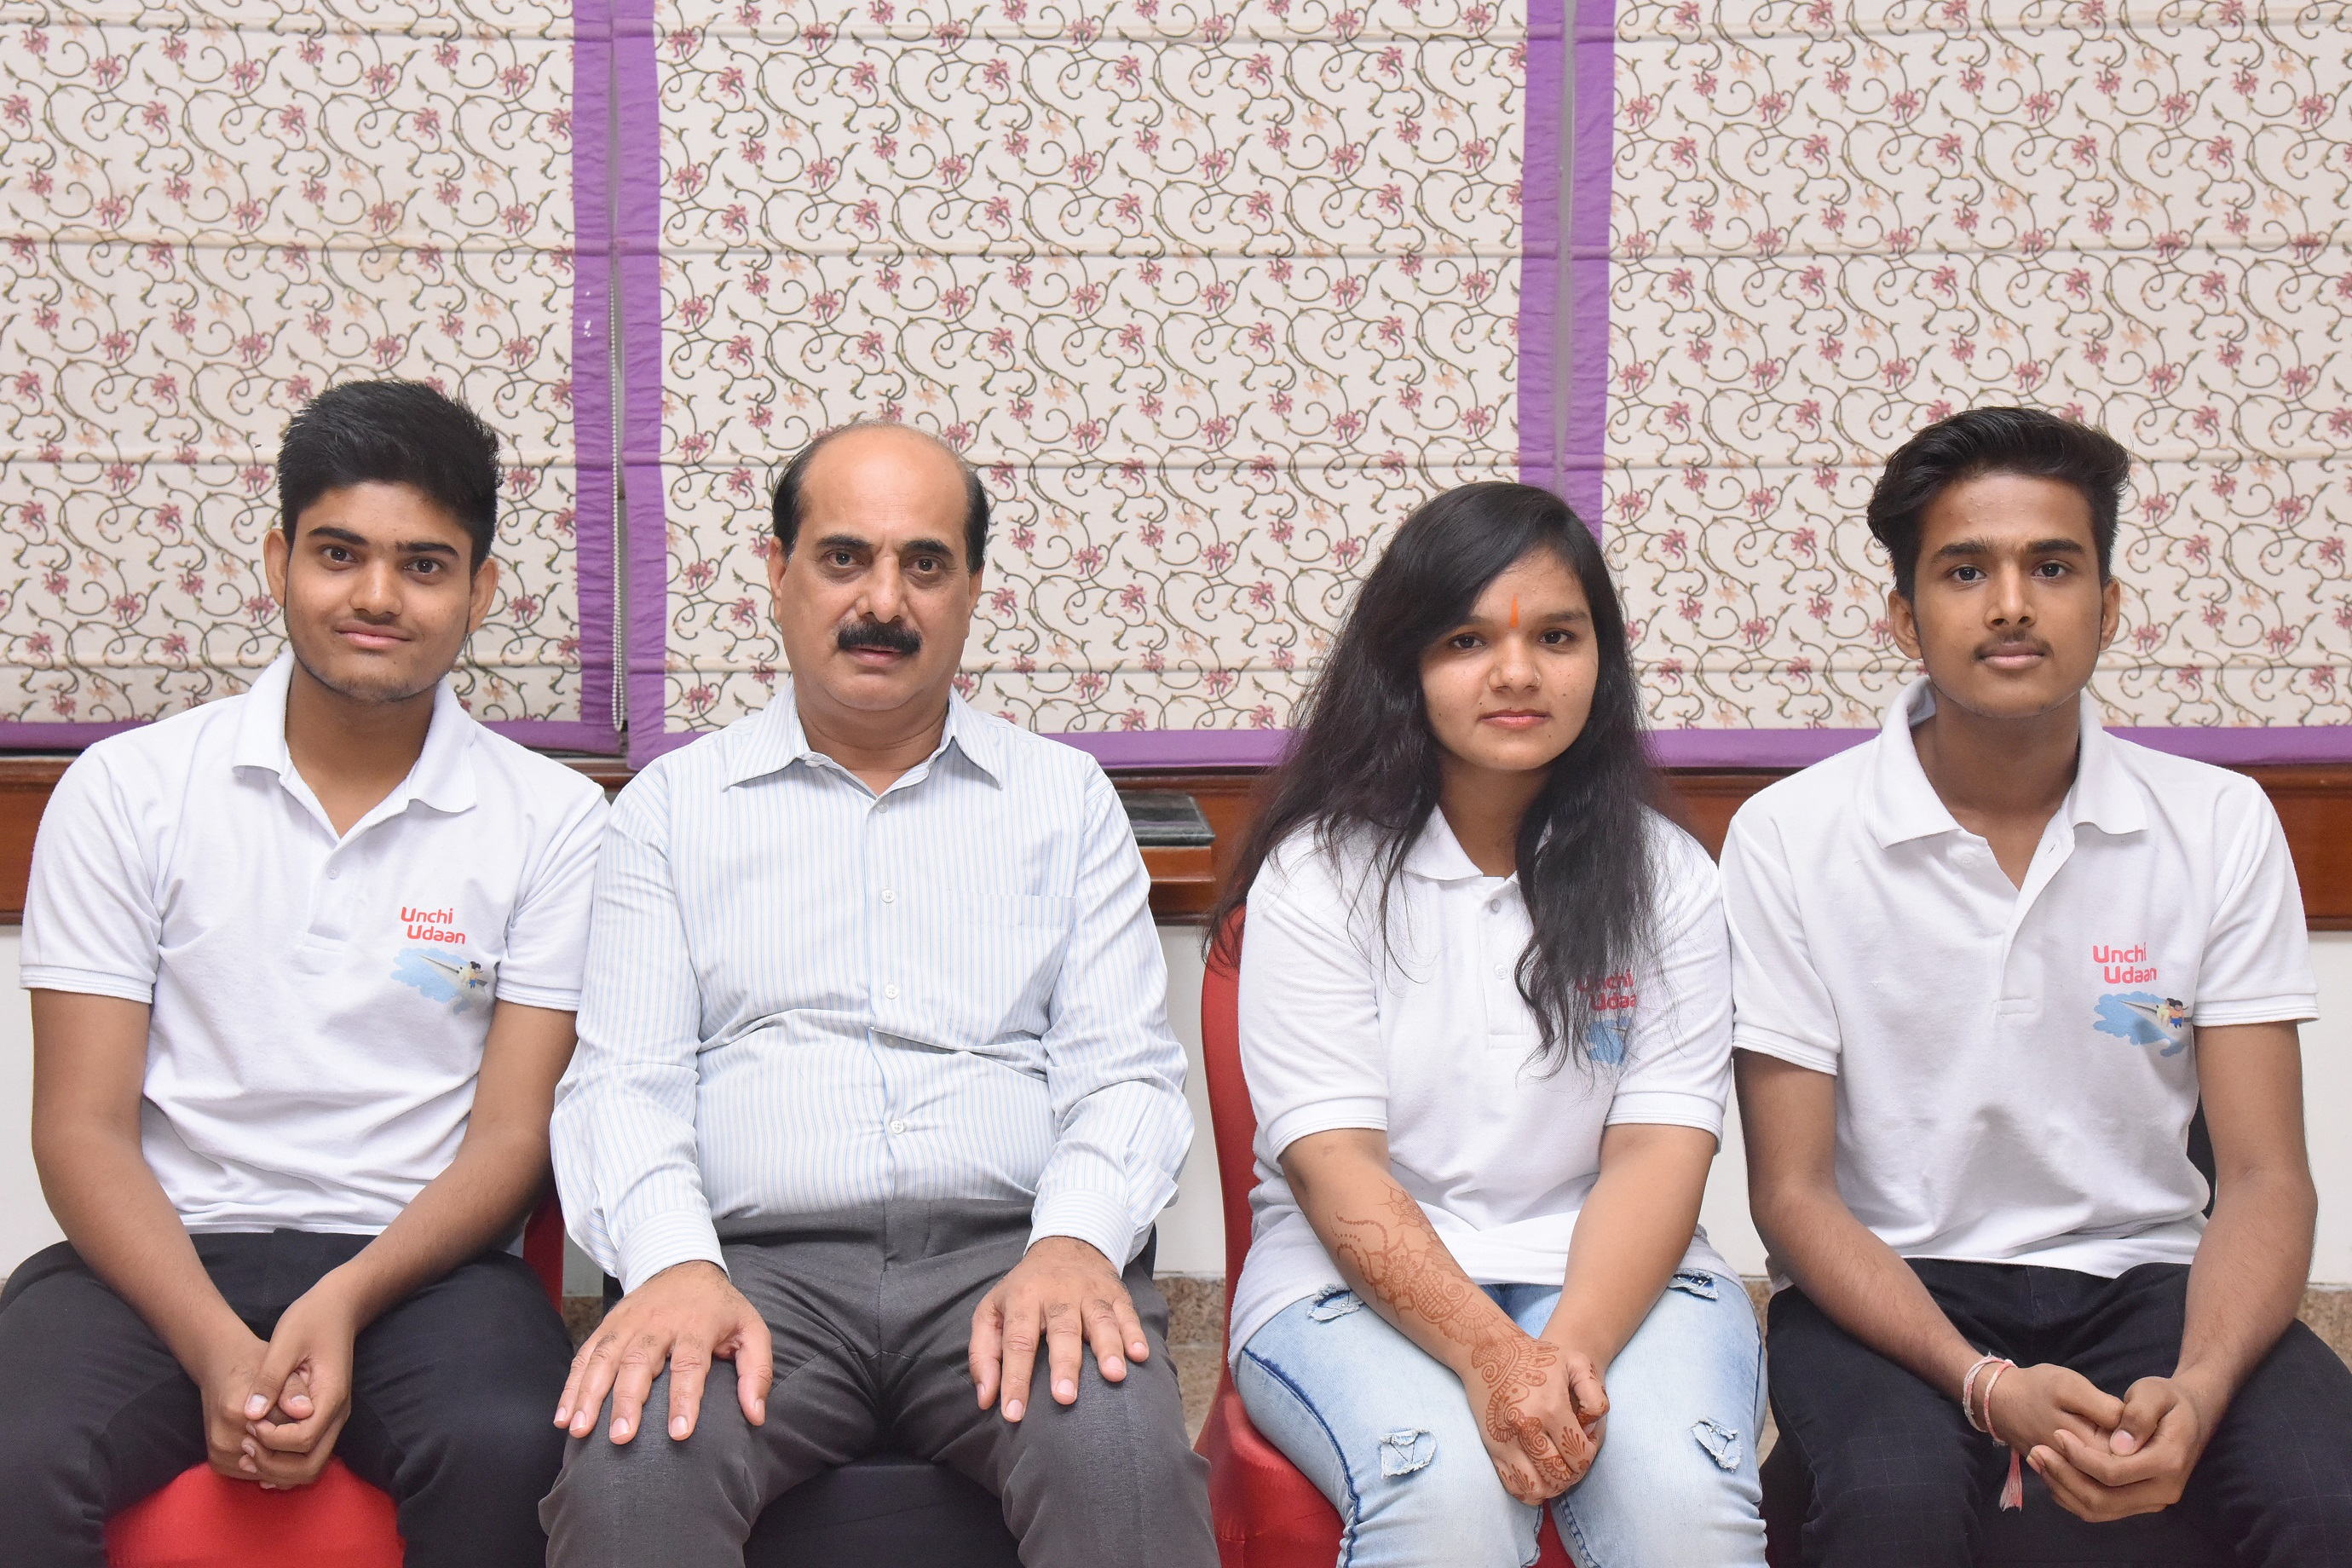 STUDENTS TAKE FLIGHT TO IIT WITH HINDUSTAN ZINC'S 'UNCHI UDAAN'